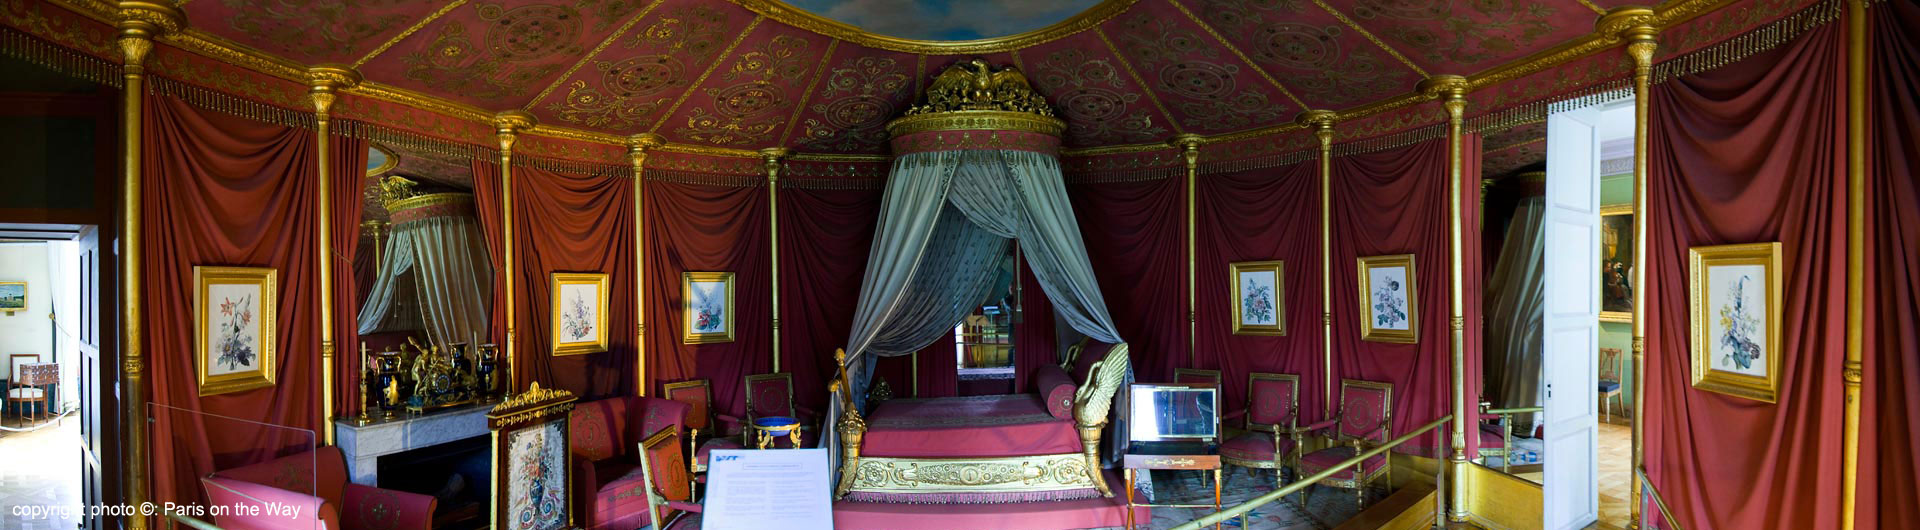 THE EMPRESS'S BEDROOM CHAMBER